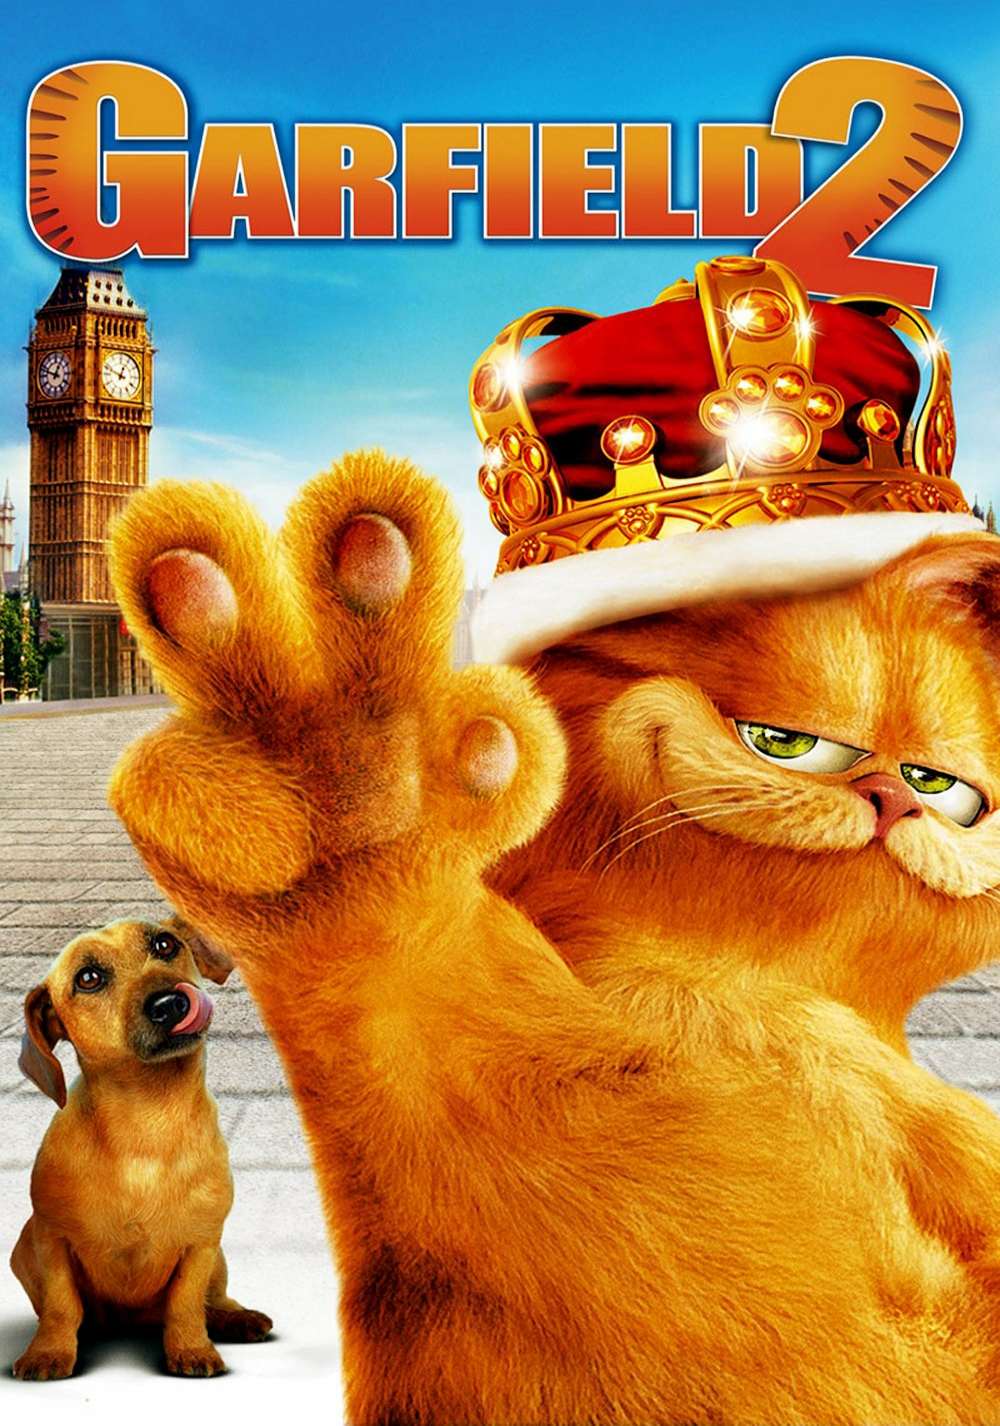 Garfield A Tail Of Two Kitties Movie Poster Id 94108 Image Abyss